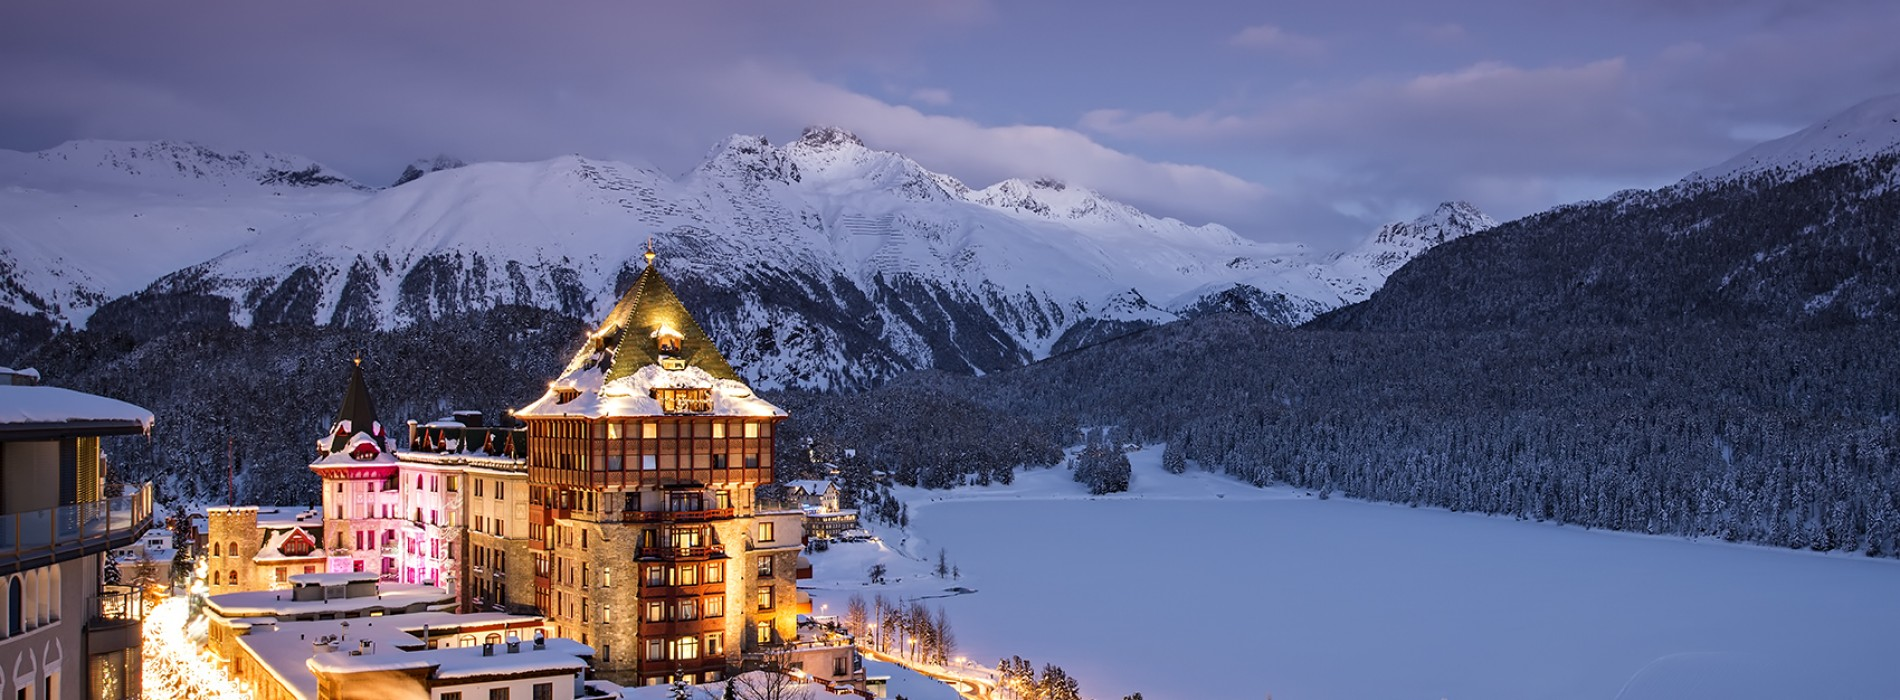 Engadin Valley to host St. Moritz Music Summit